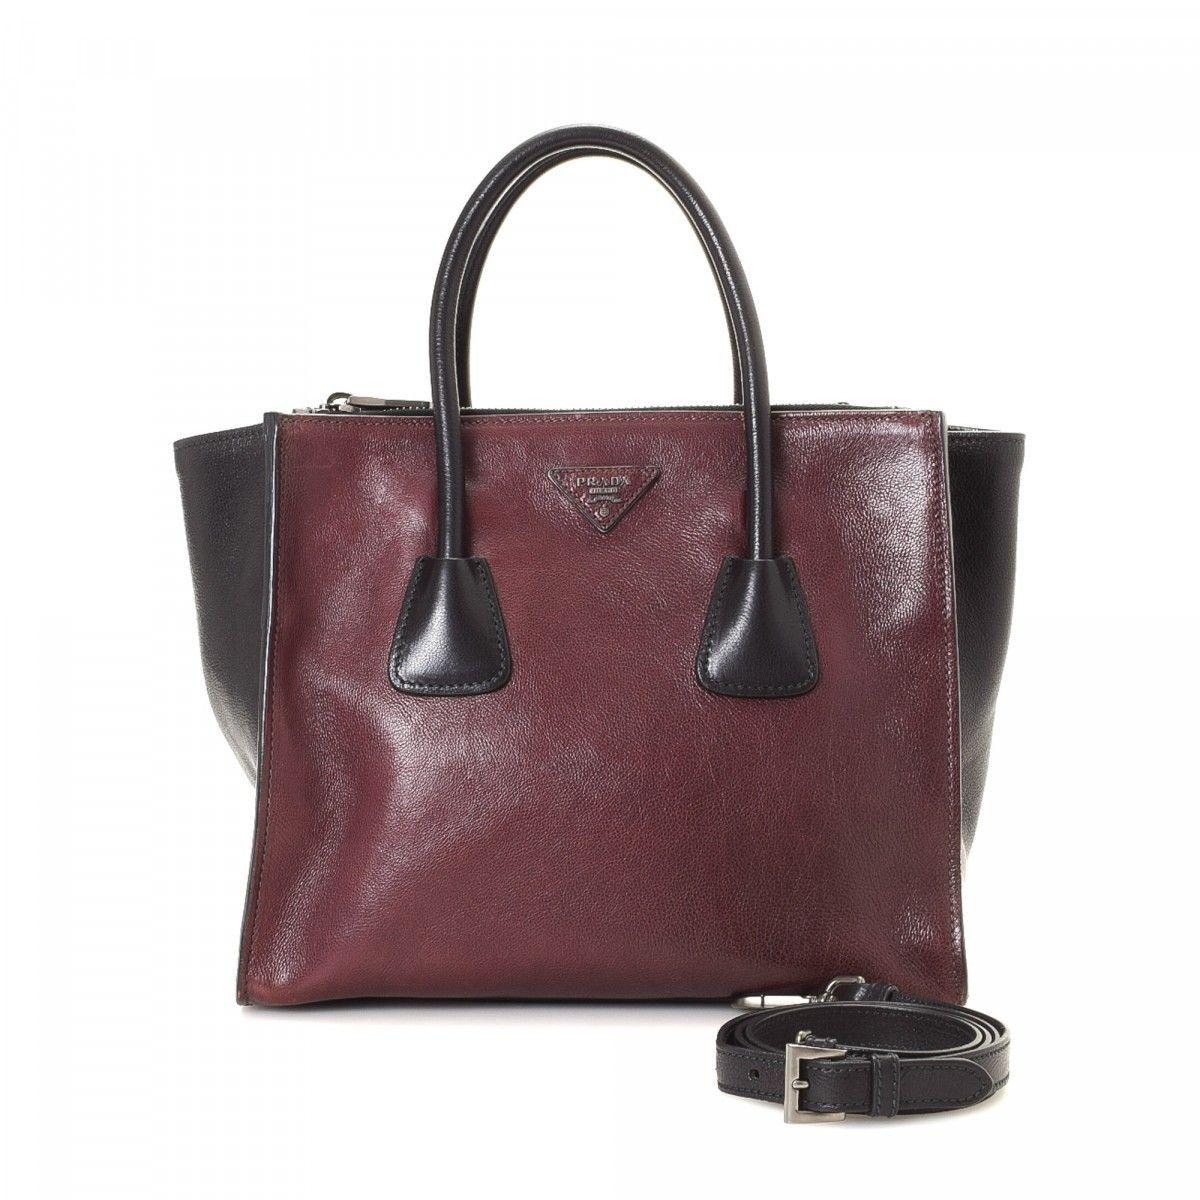 58b270bca7a899 Prada Two Toned Handbags For Sale Images | Stanford Center for ...